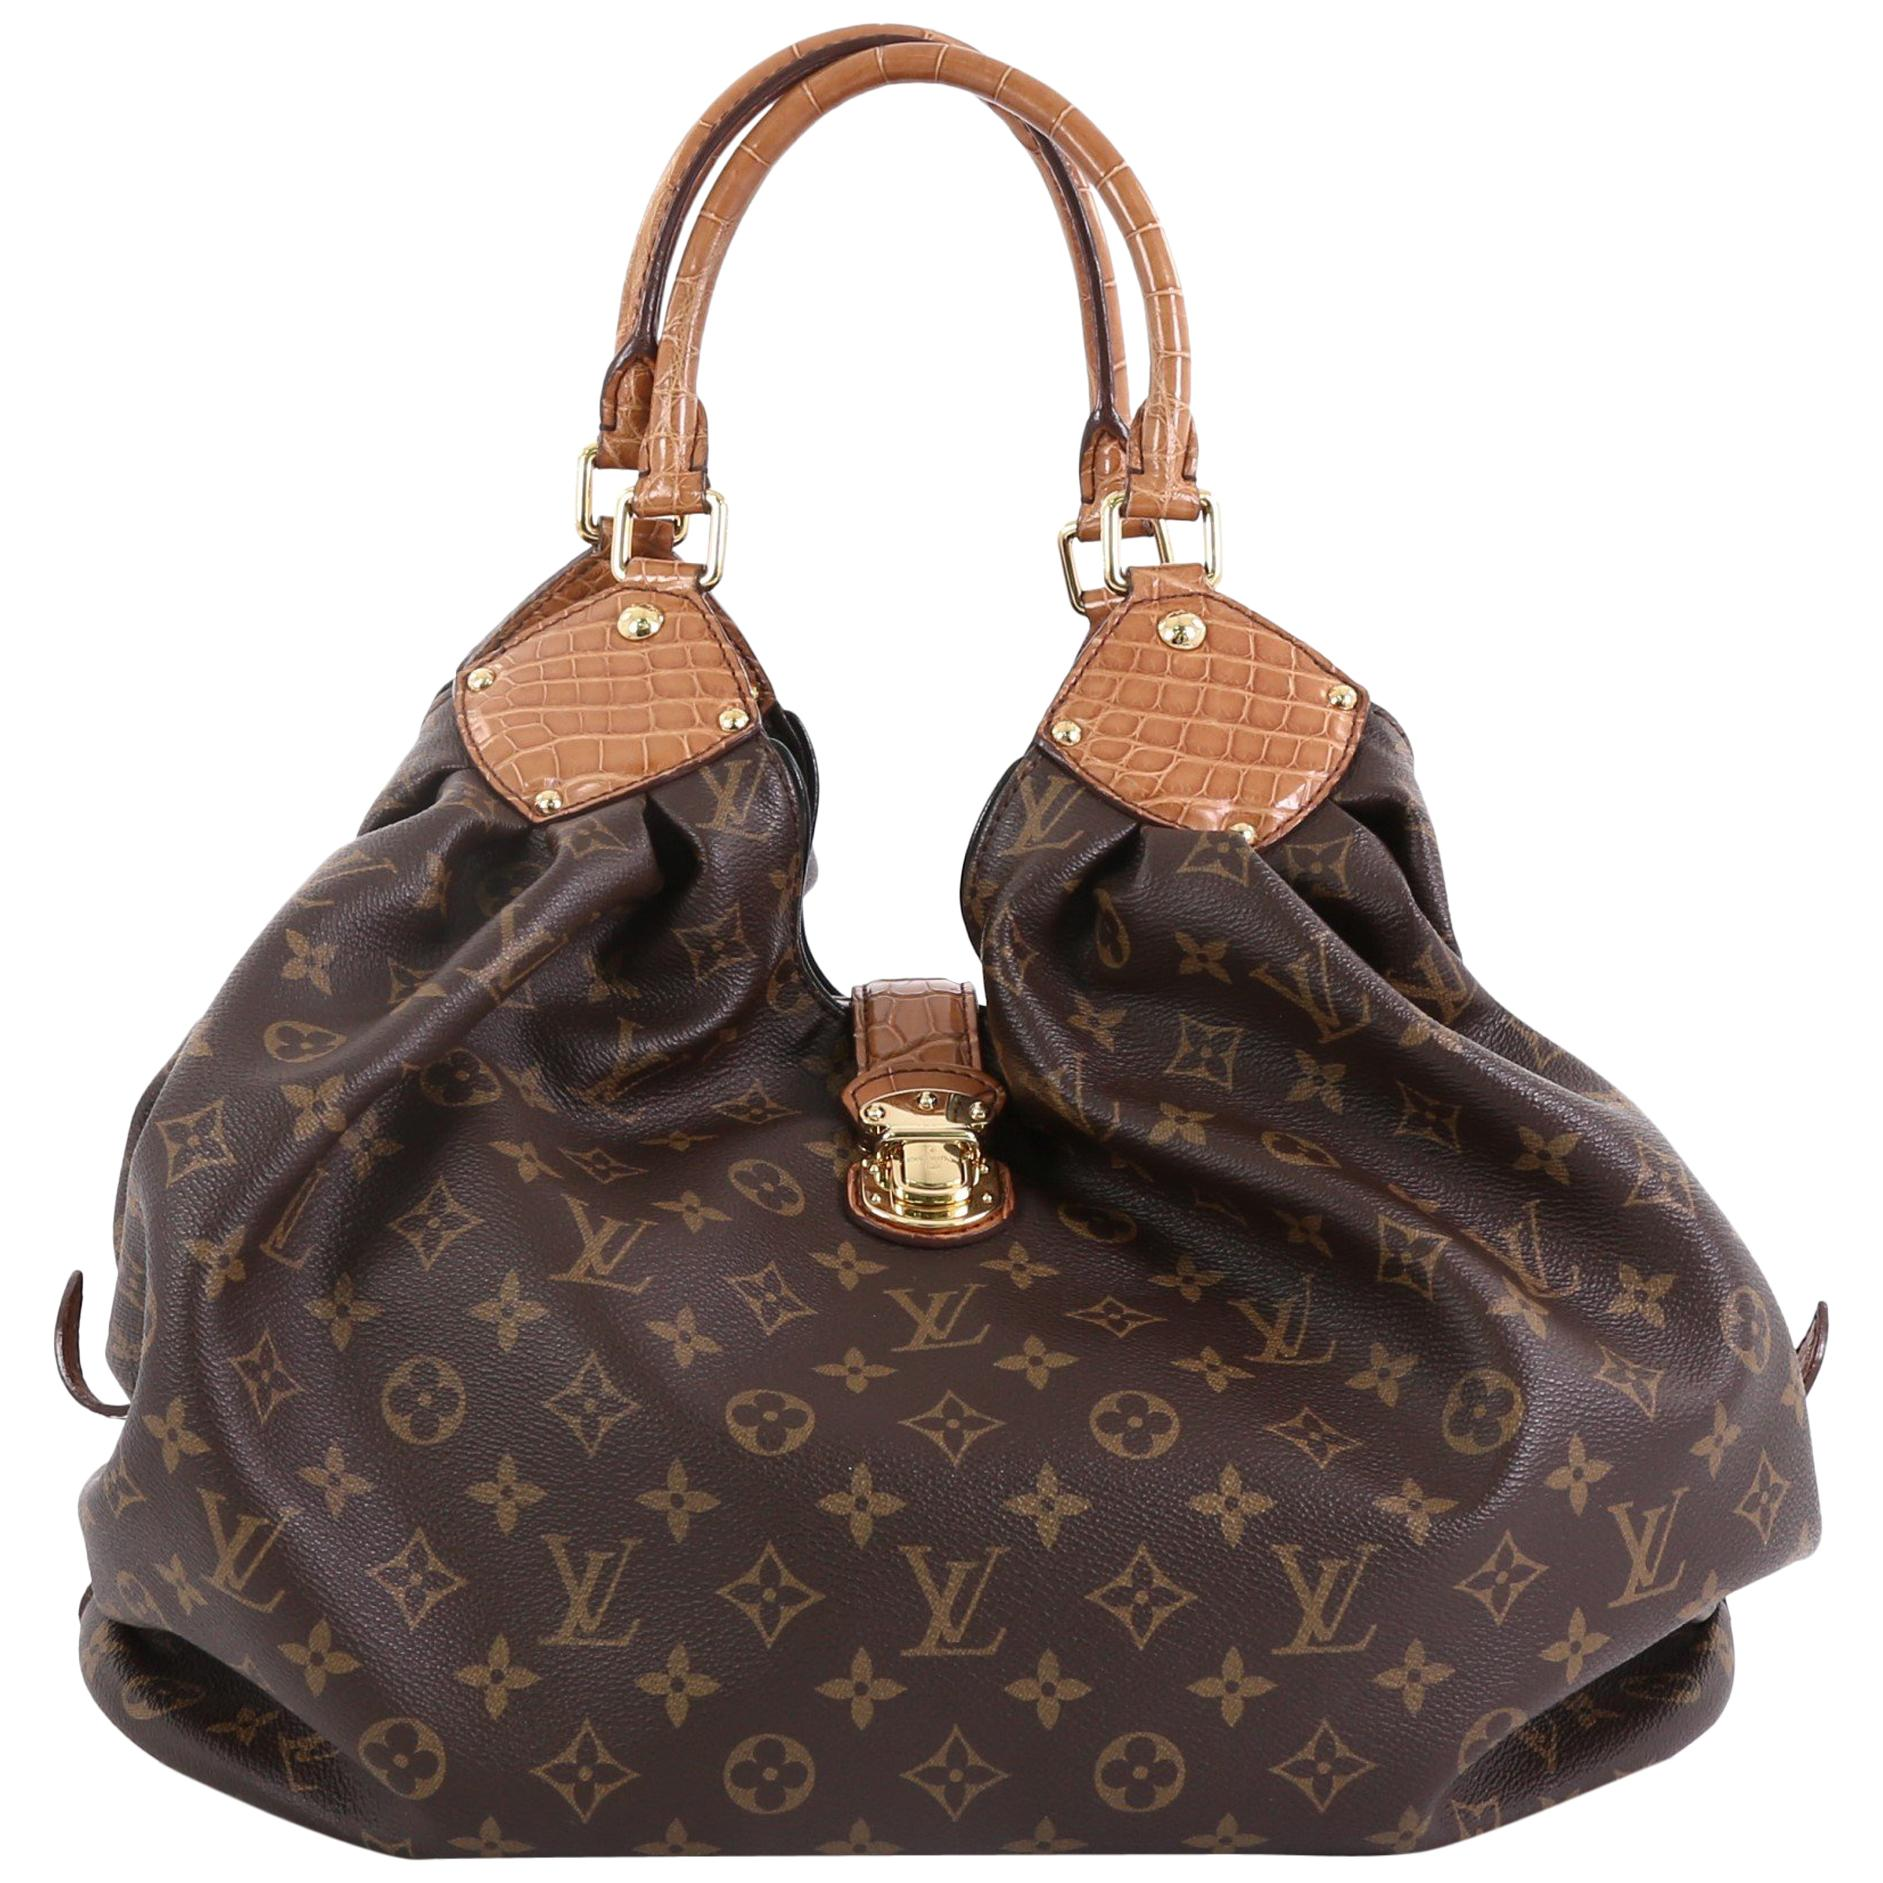 78a56c0f60b9 Louis Vuitton Hobo Bags - 159 For Sale on 1stdibs